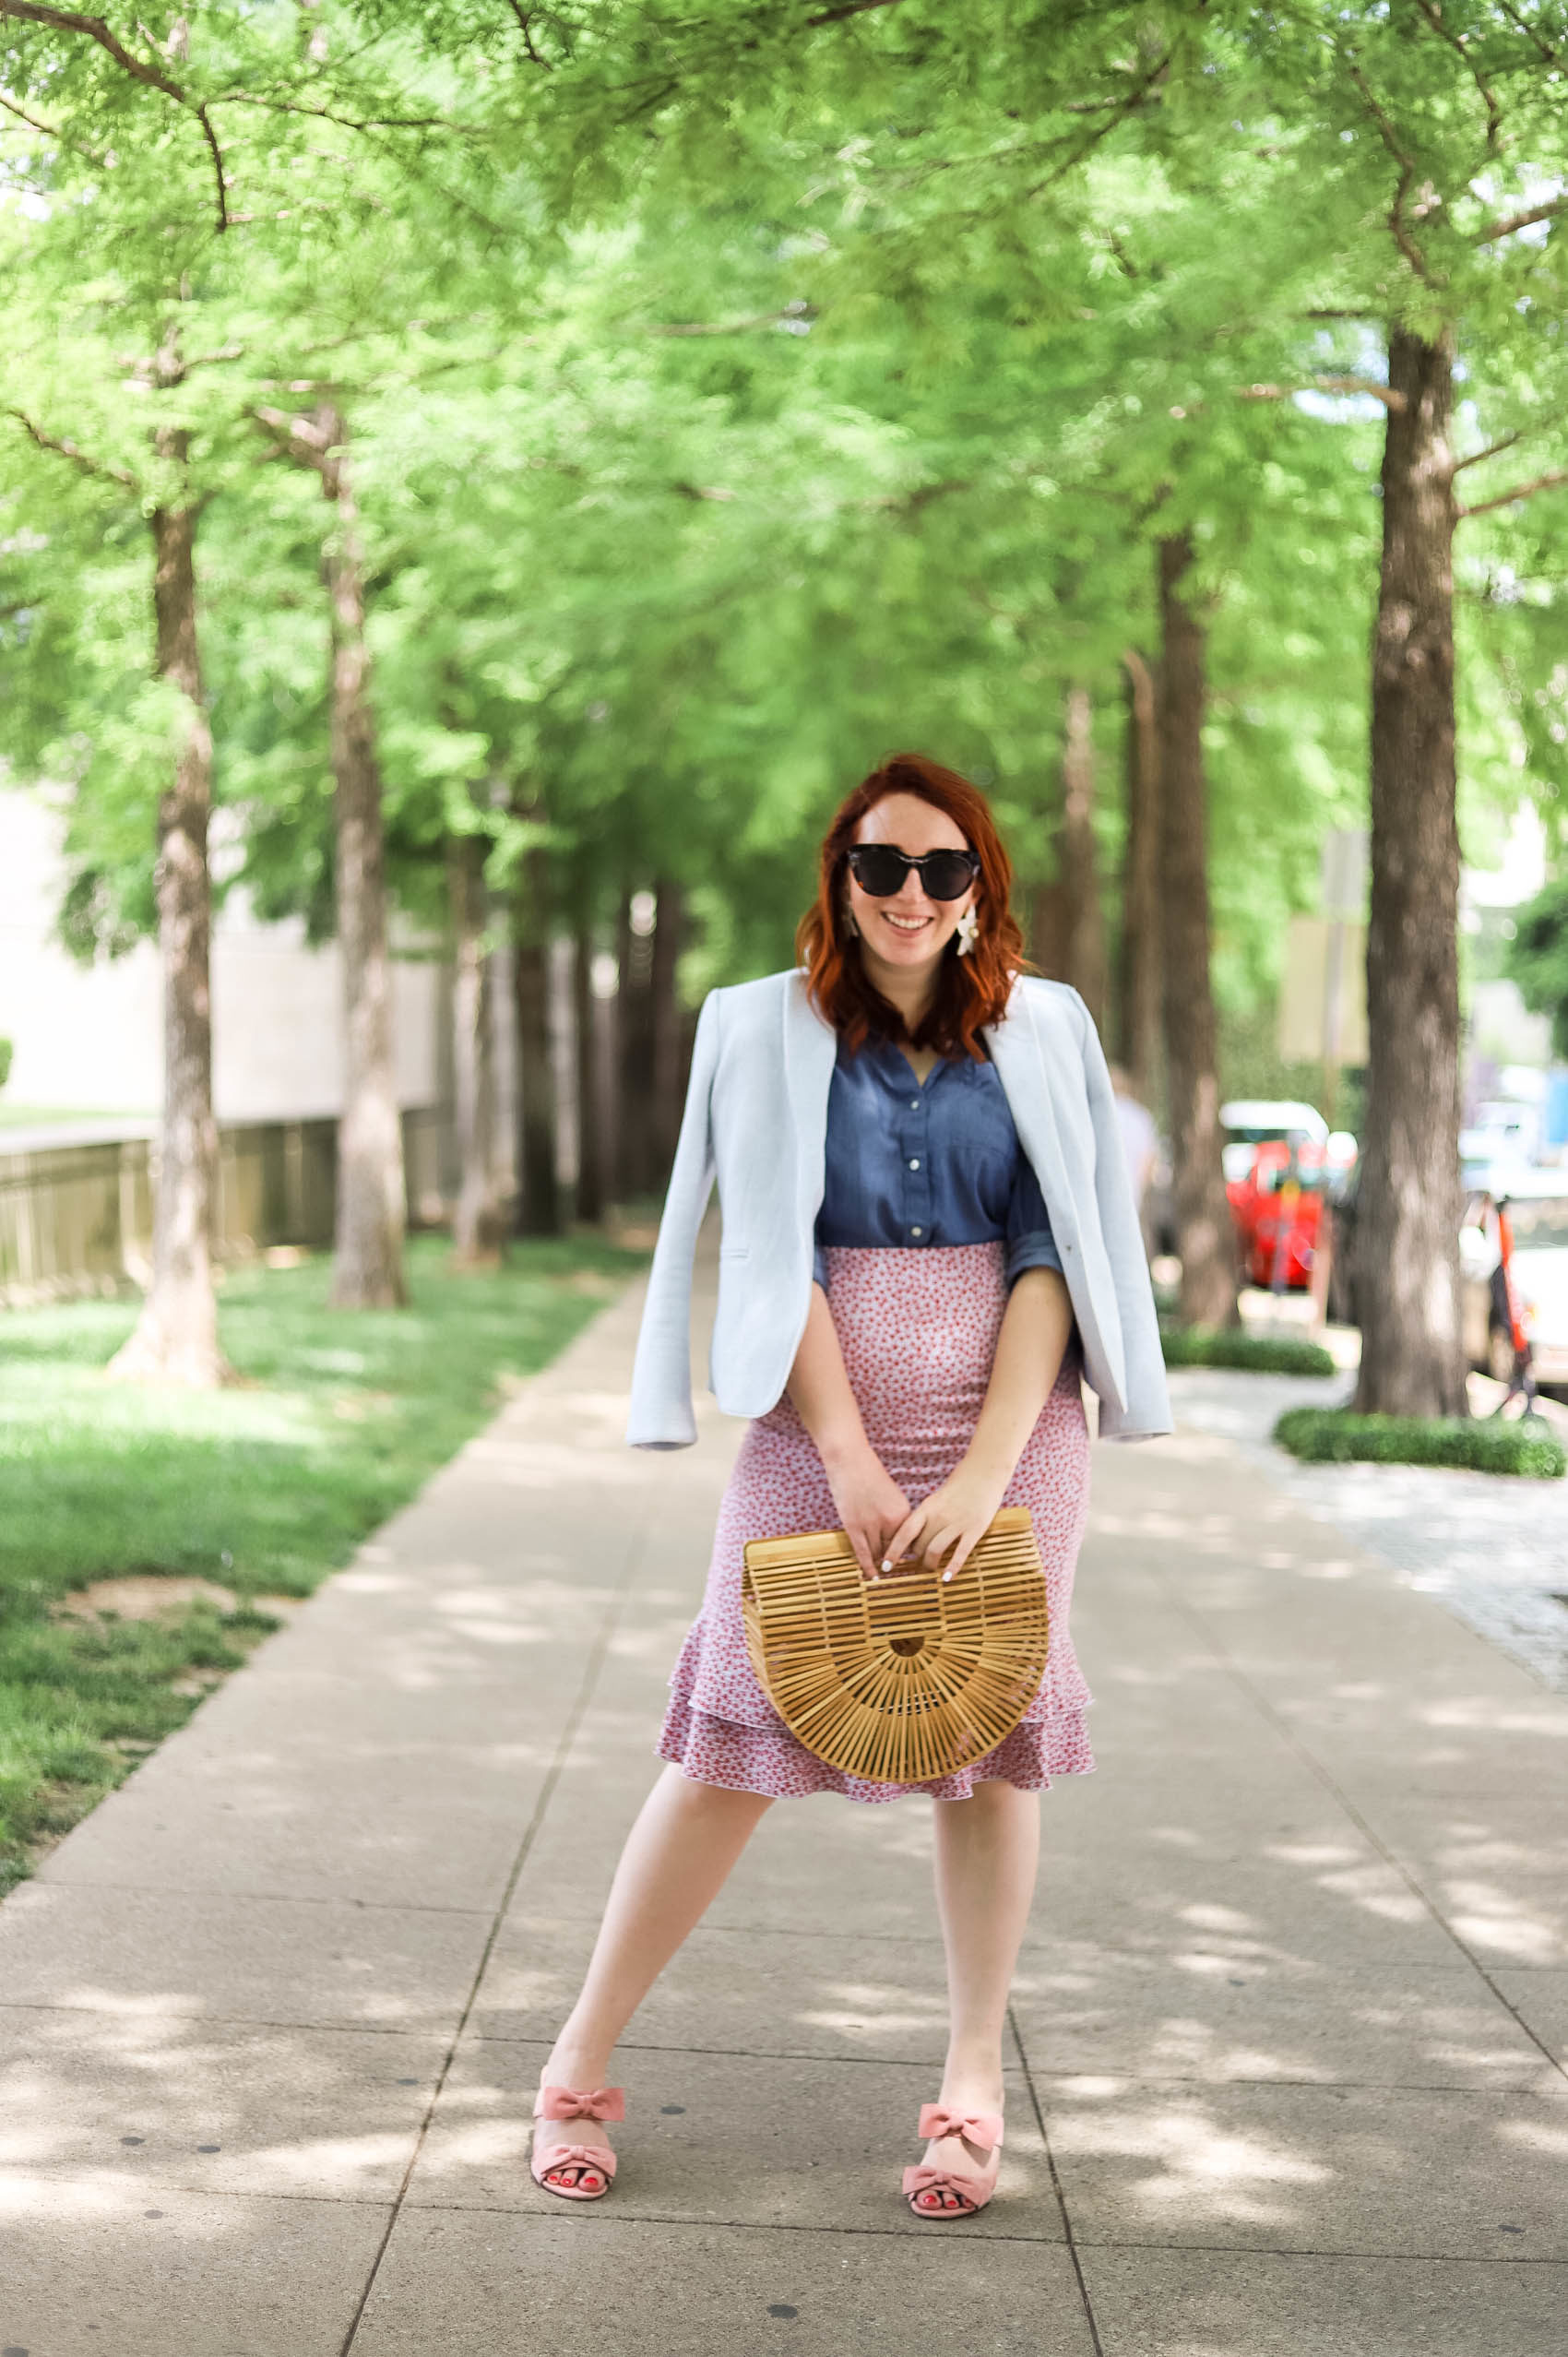 Floral midi skirt for work | Dallas blogger shares how to style a floral midi skirt for work this summer, featuring a chambray shirt. Plus how to keep in touch with long-distance friends if your friend moved abroad! #womensfashion #summerstyle #fourthofjuly #outfitideas #summersales #fourthofjulyoutfits #fashion#style